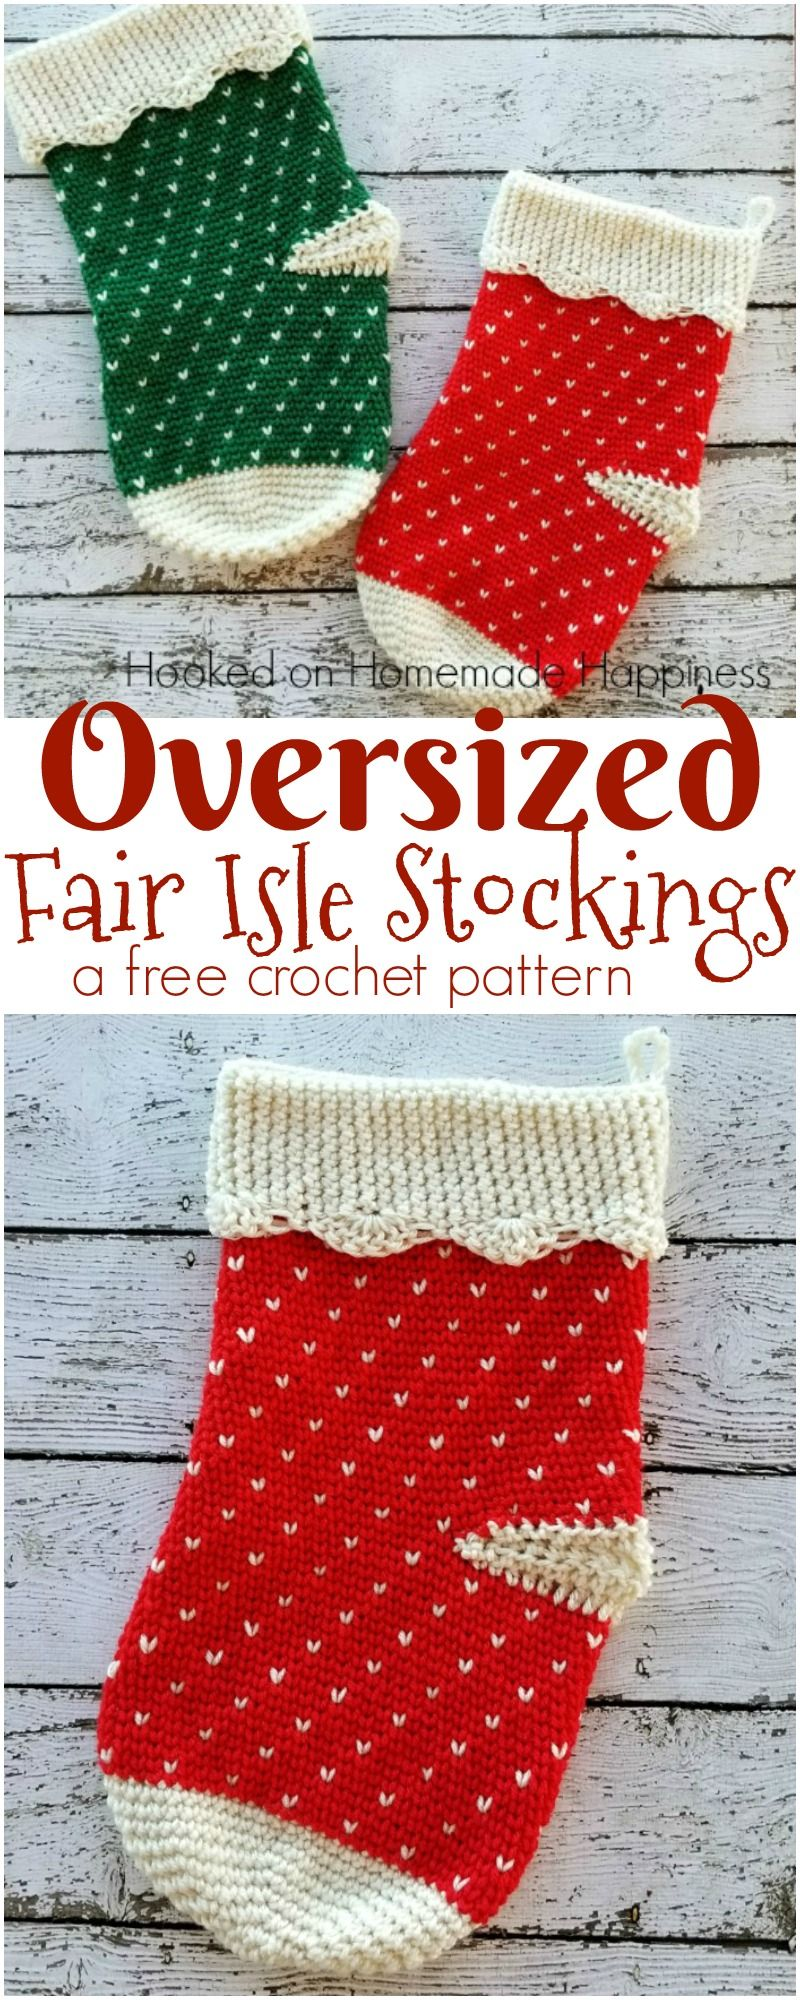 Oversized fair isle christmas stockings crochet pattern saint oversized fair isle christmas stockings crochet pattern bankloansurffo Choice Image